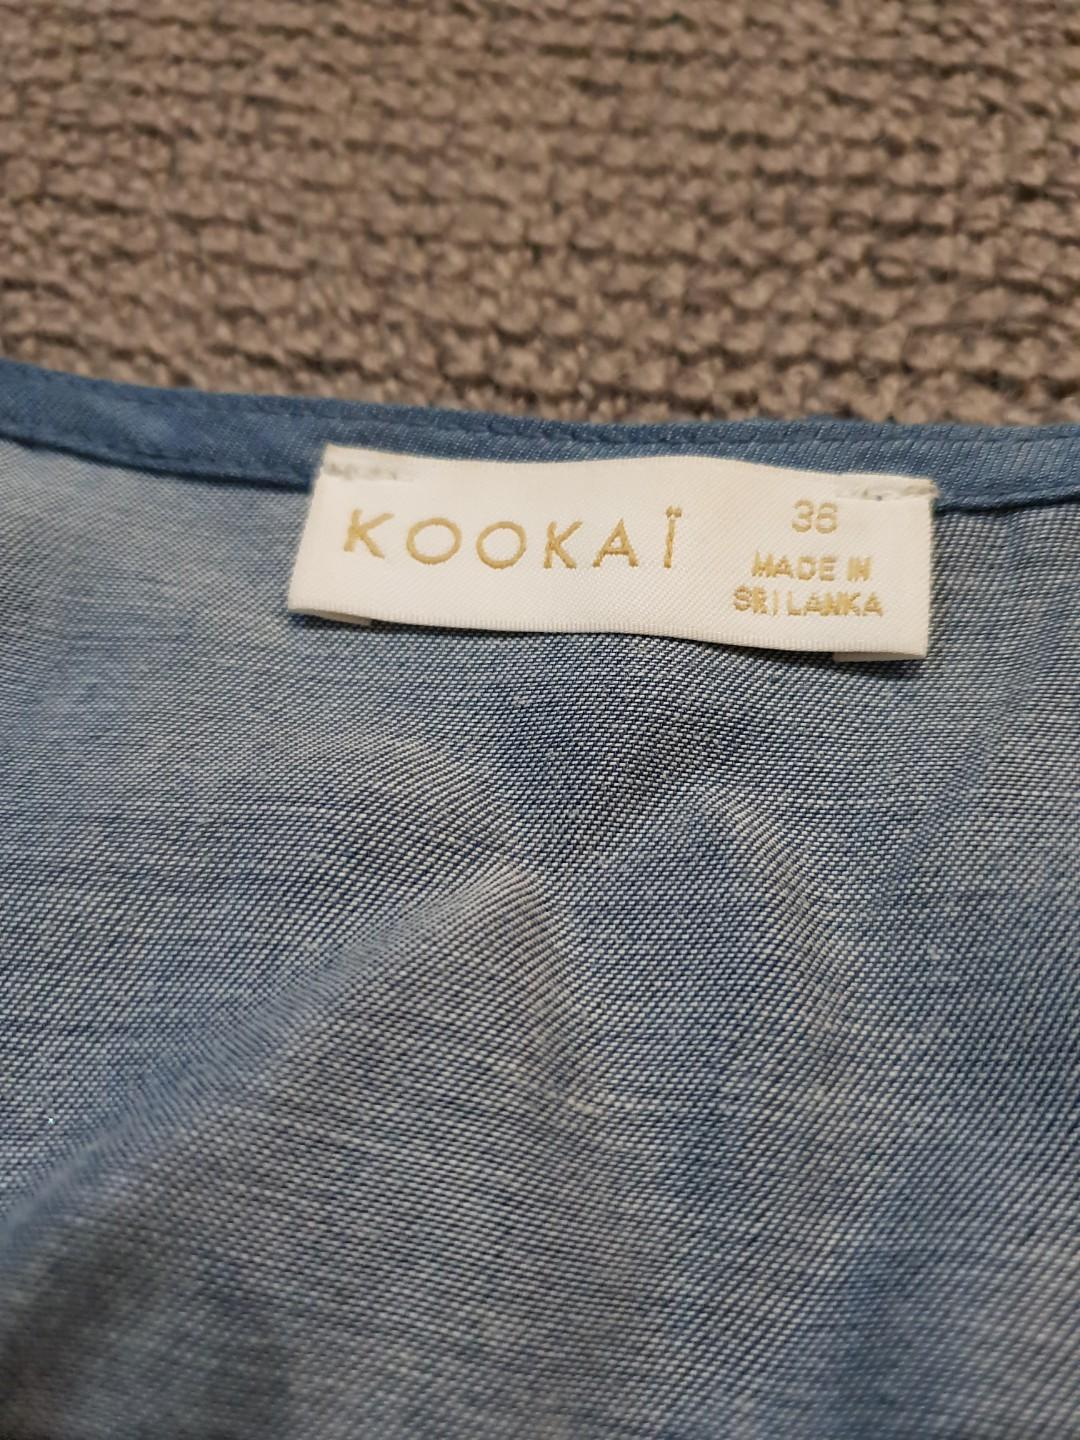 Kookai move out sale